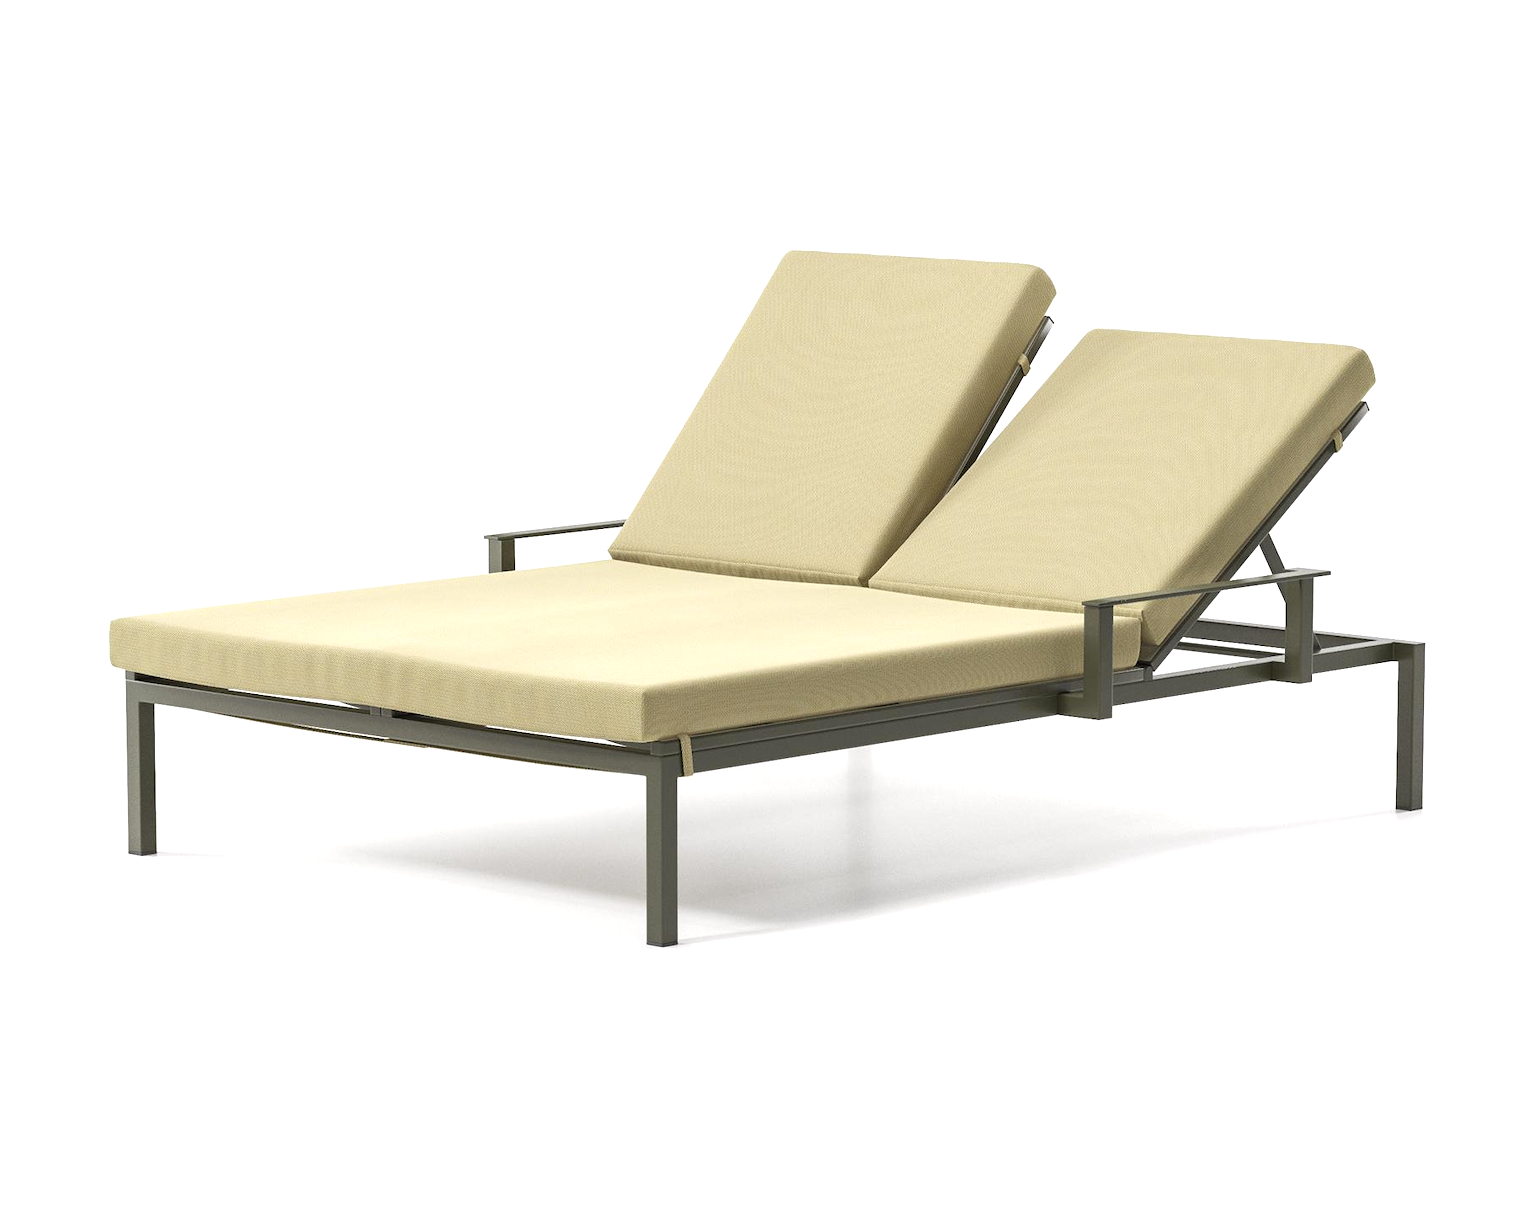 Product Image landscape via double sunlounger with arms